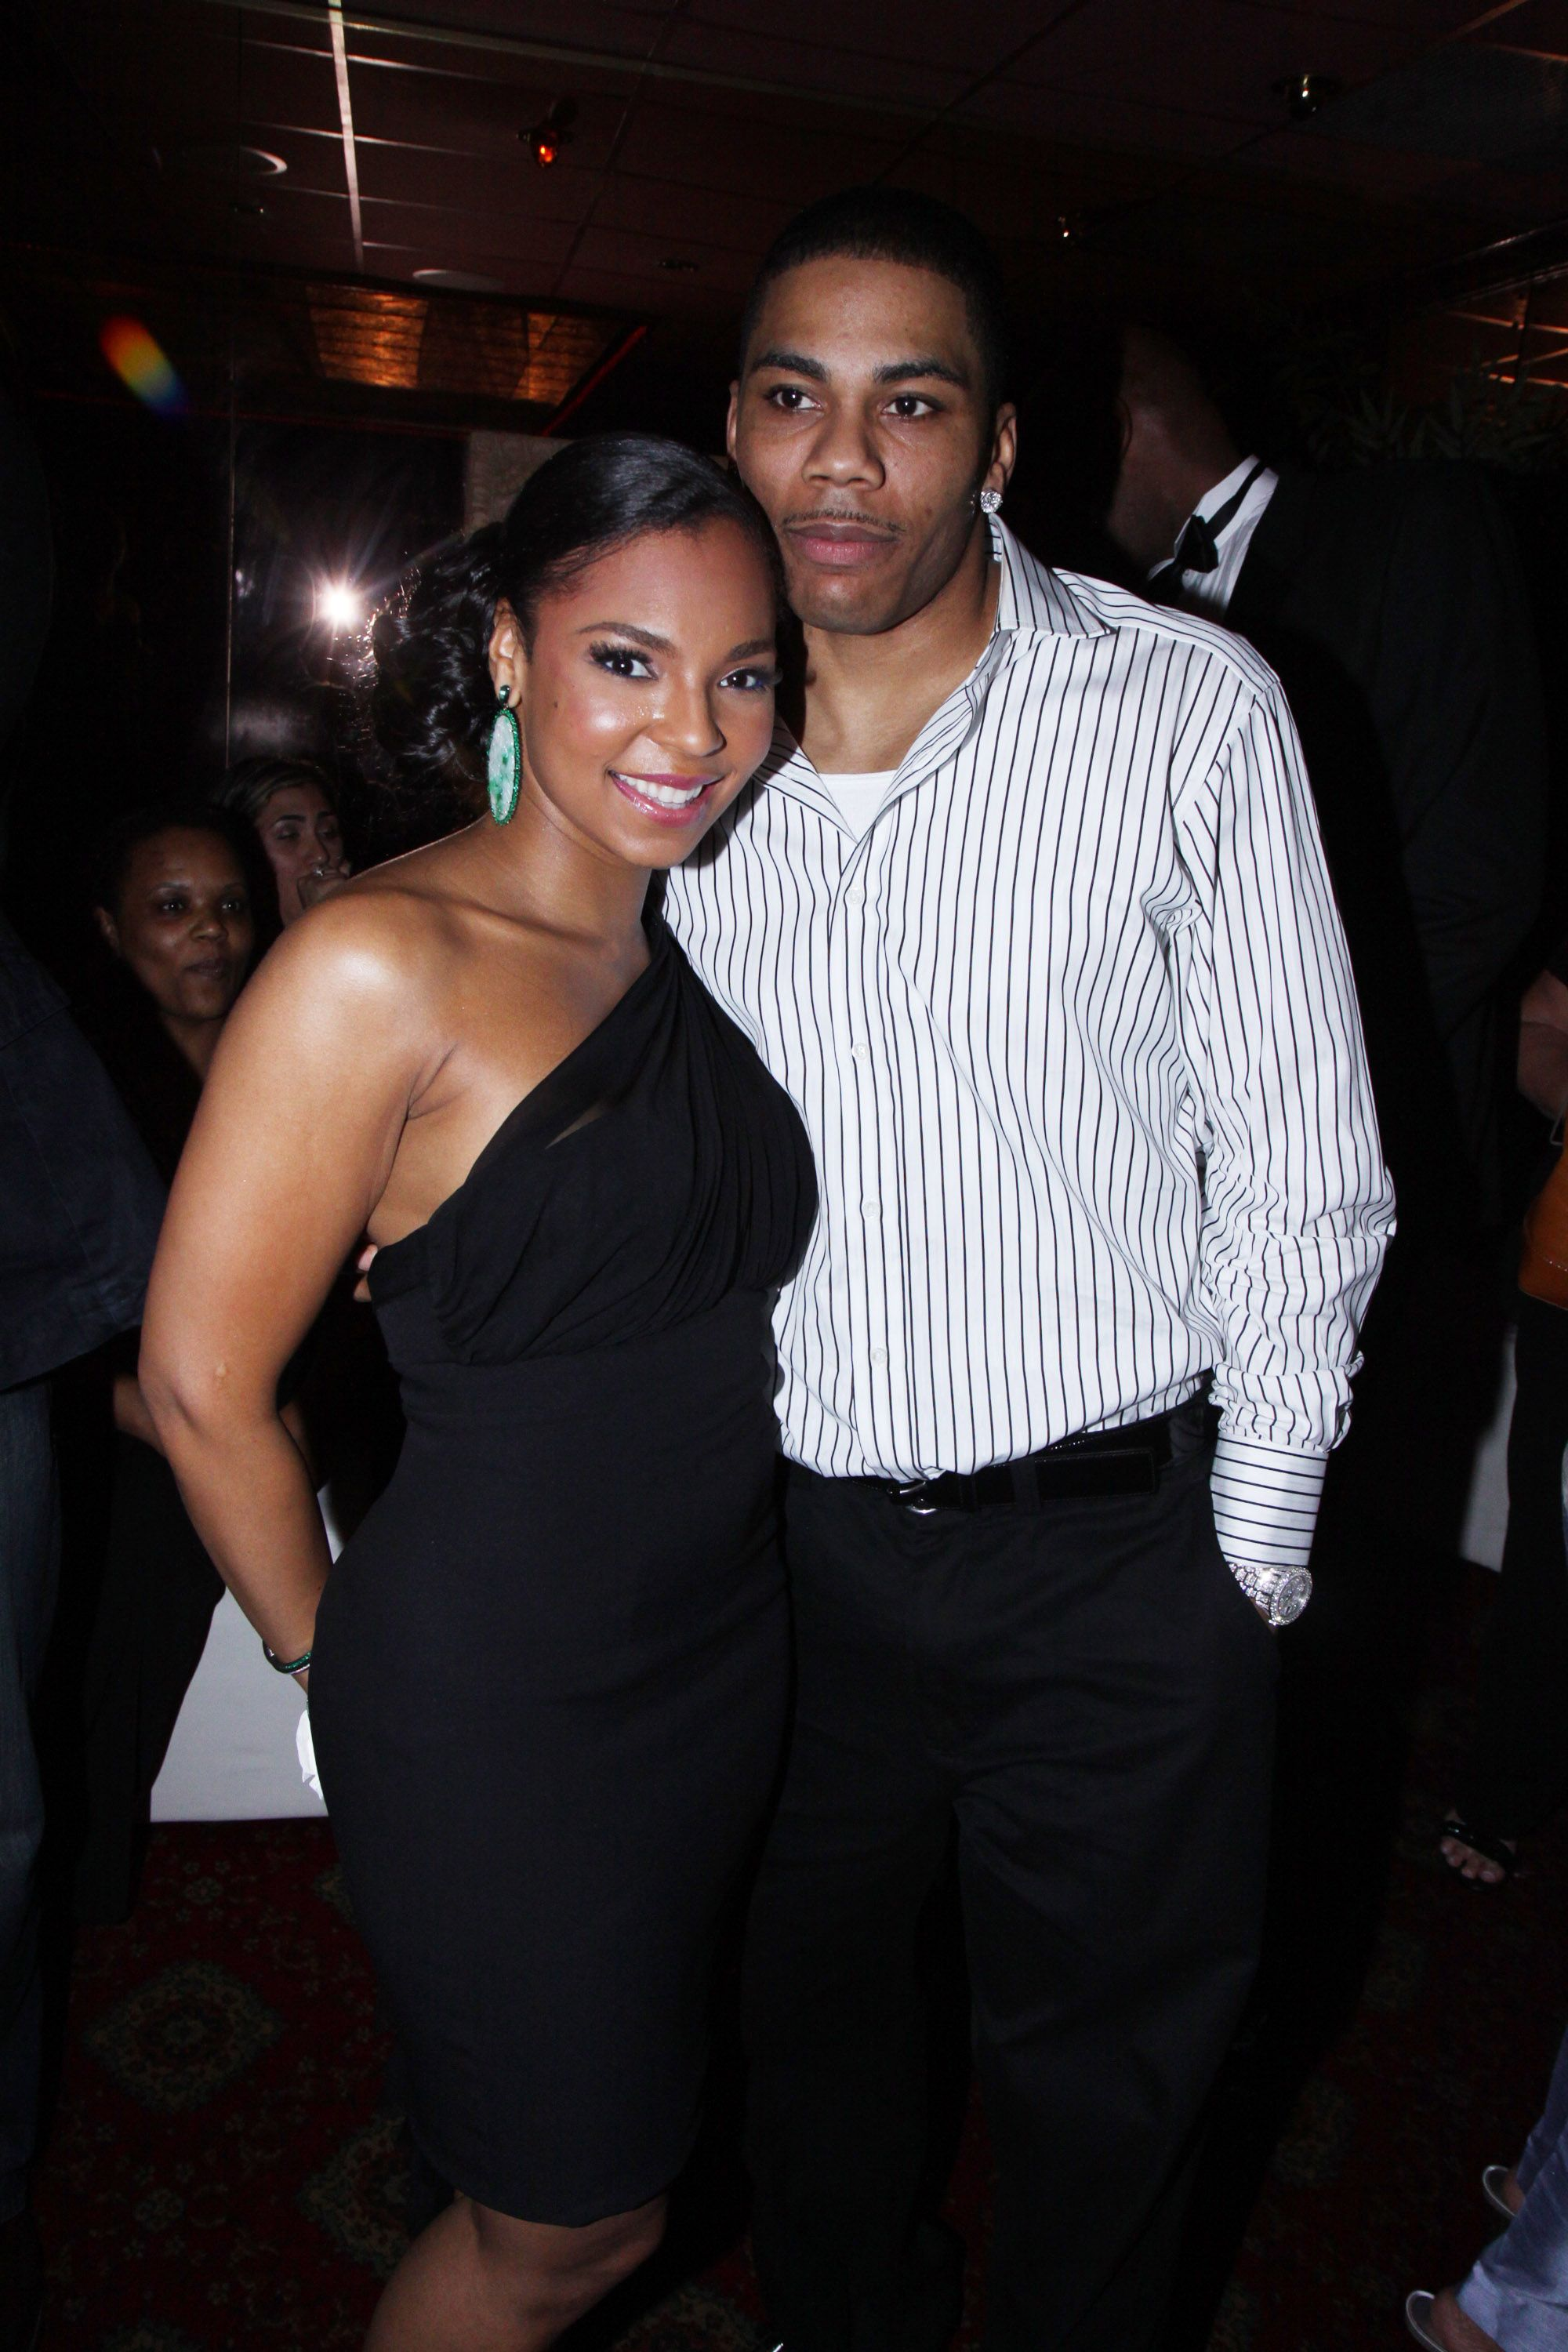 """Ashanti and Nelly at """"The Wiz"""" opening night party in 2009 in New York City 